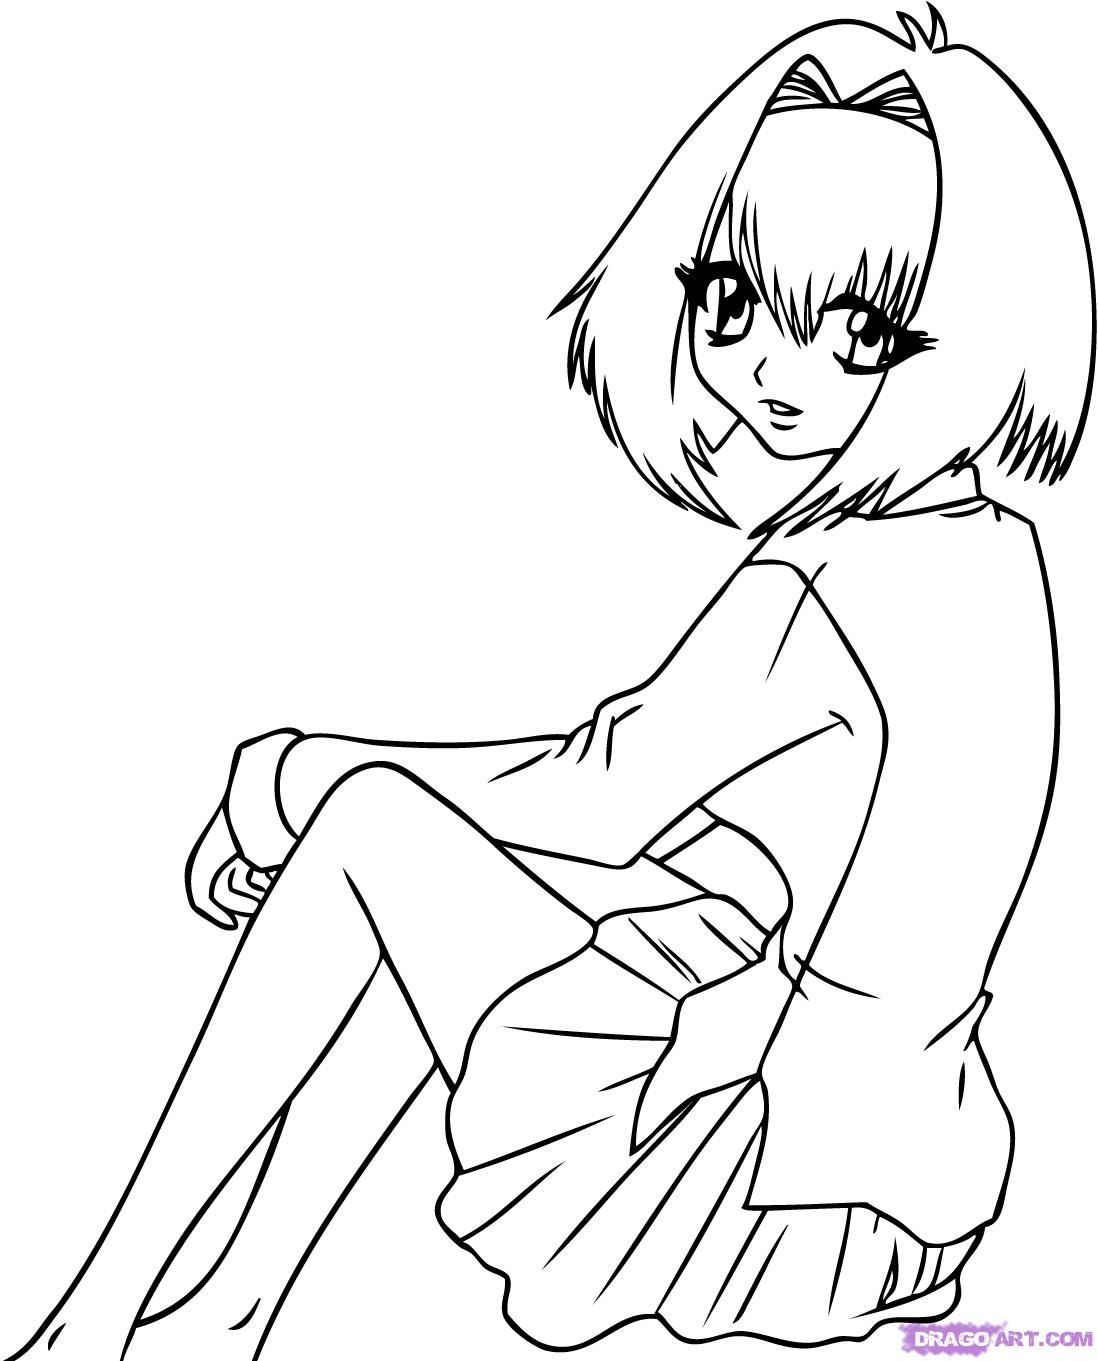 Coloring pages vampire